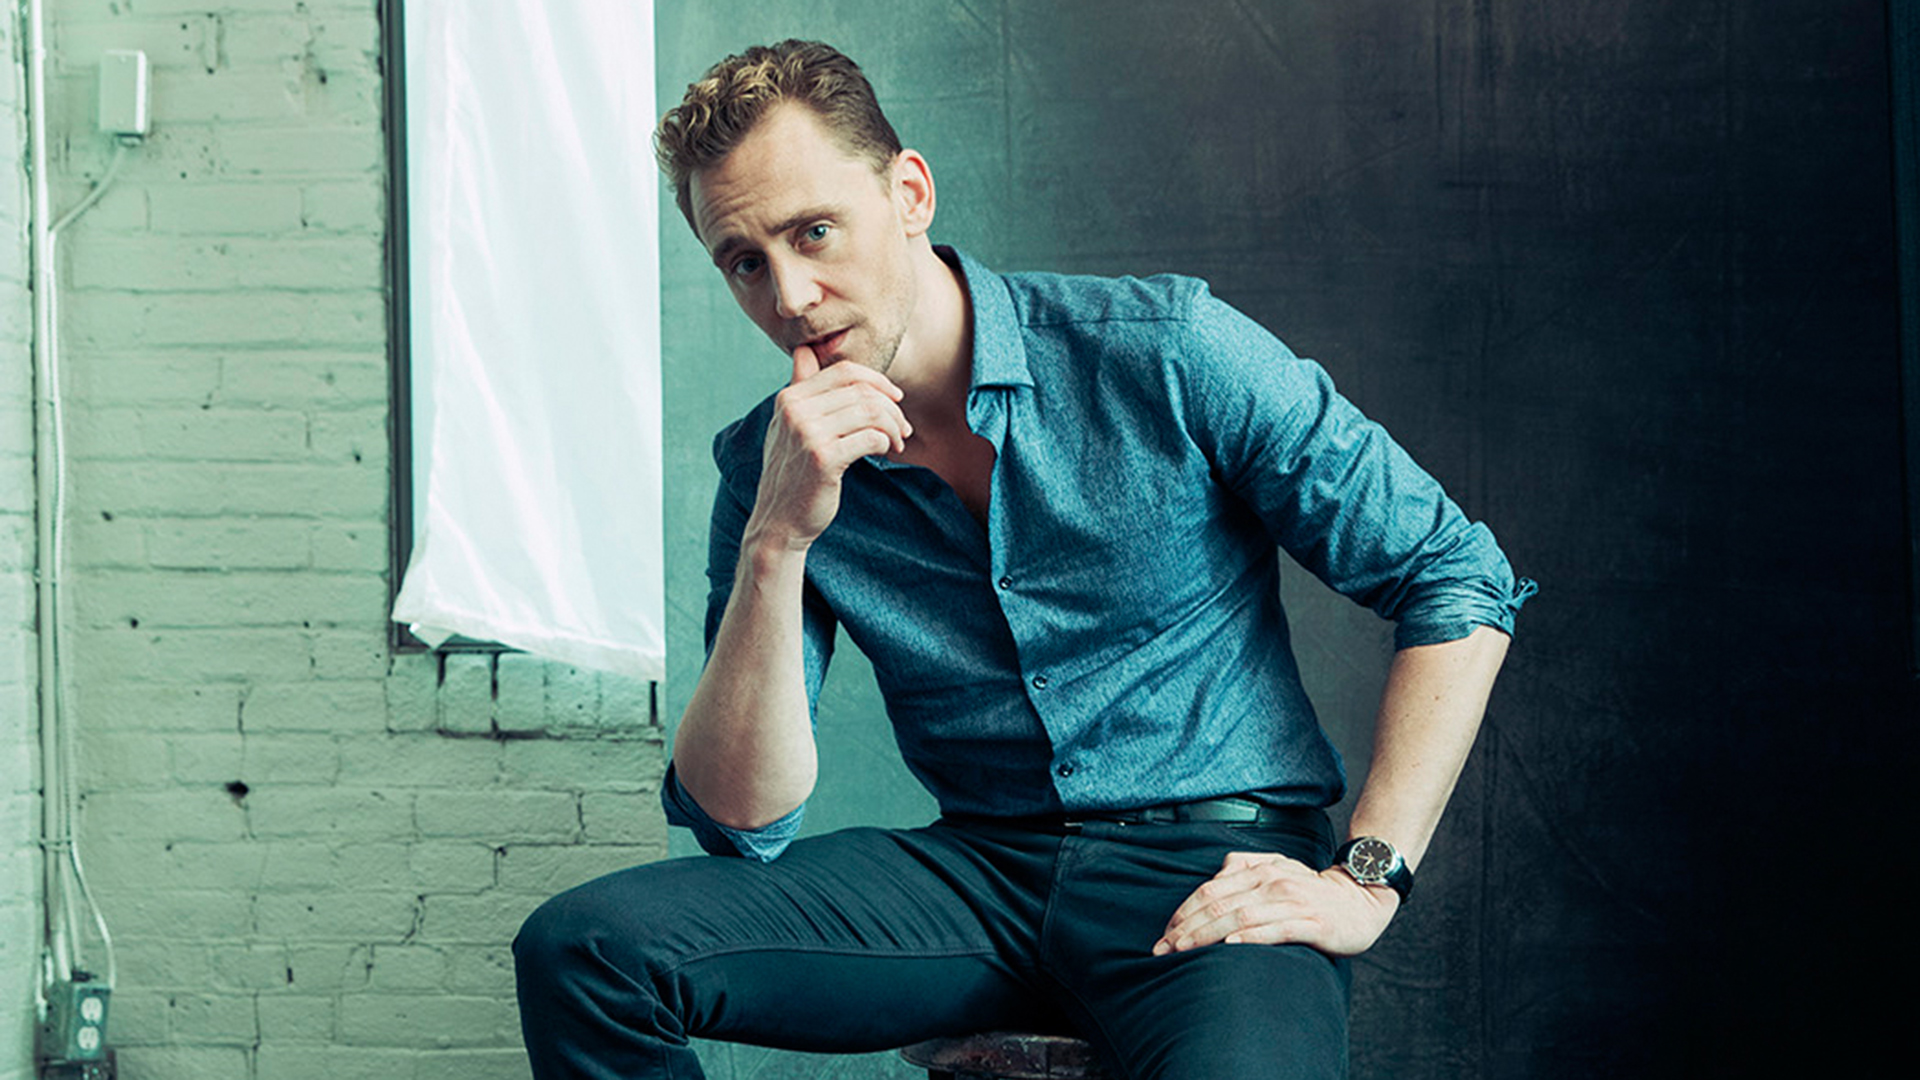 Tom Hiddleston Wallpaper   HD HdCoolWallpapersCom 1920x1080